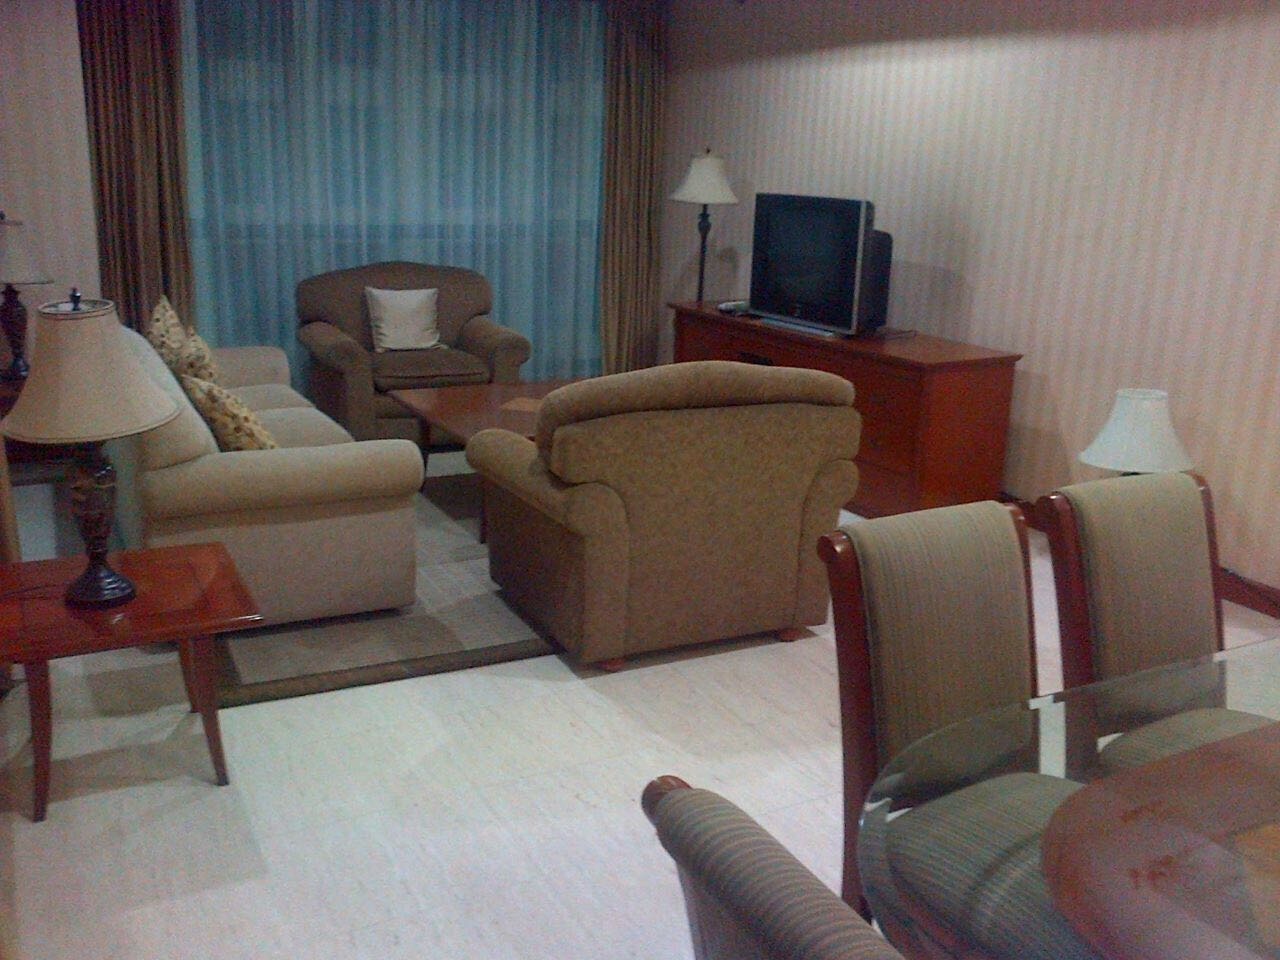 For Rent : Casablanca Apartment 3Bed 2Bath 1Maid - Fully Furnished in Good Location.